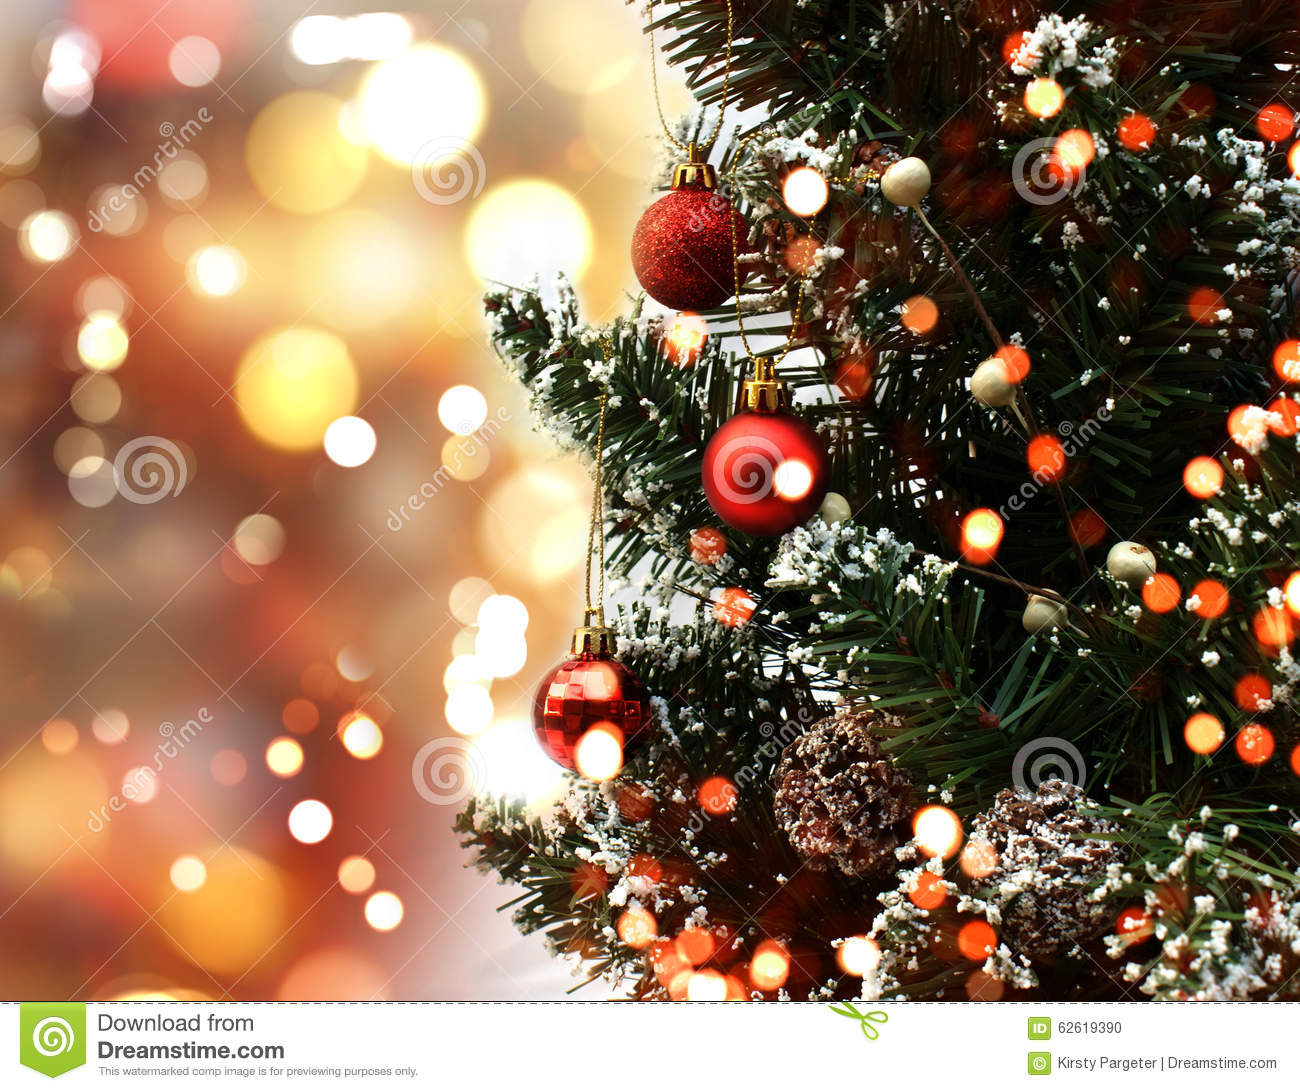 1300x1091 - Christmas Trees Backgrounds 14